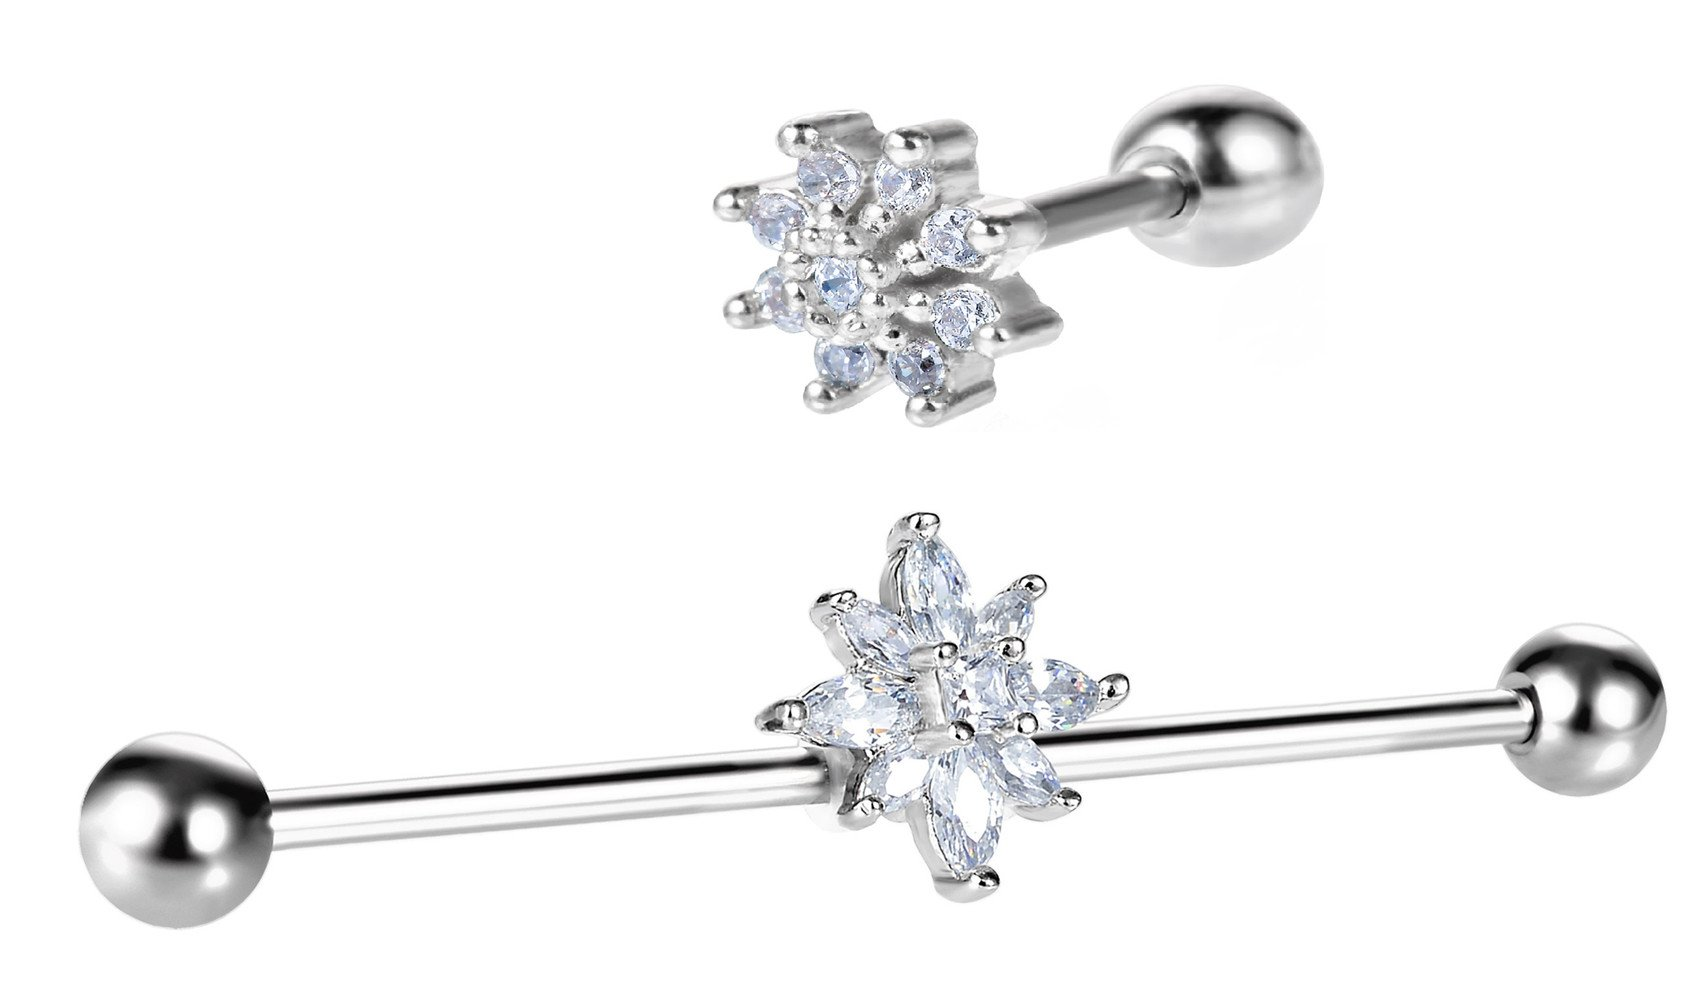 C&L Clear CZ Gem Industrial Barbell Earring and Tragus stud Earring Cartilage Body Piercing Jewelry set of 2